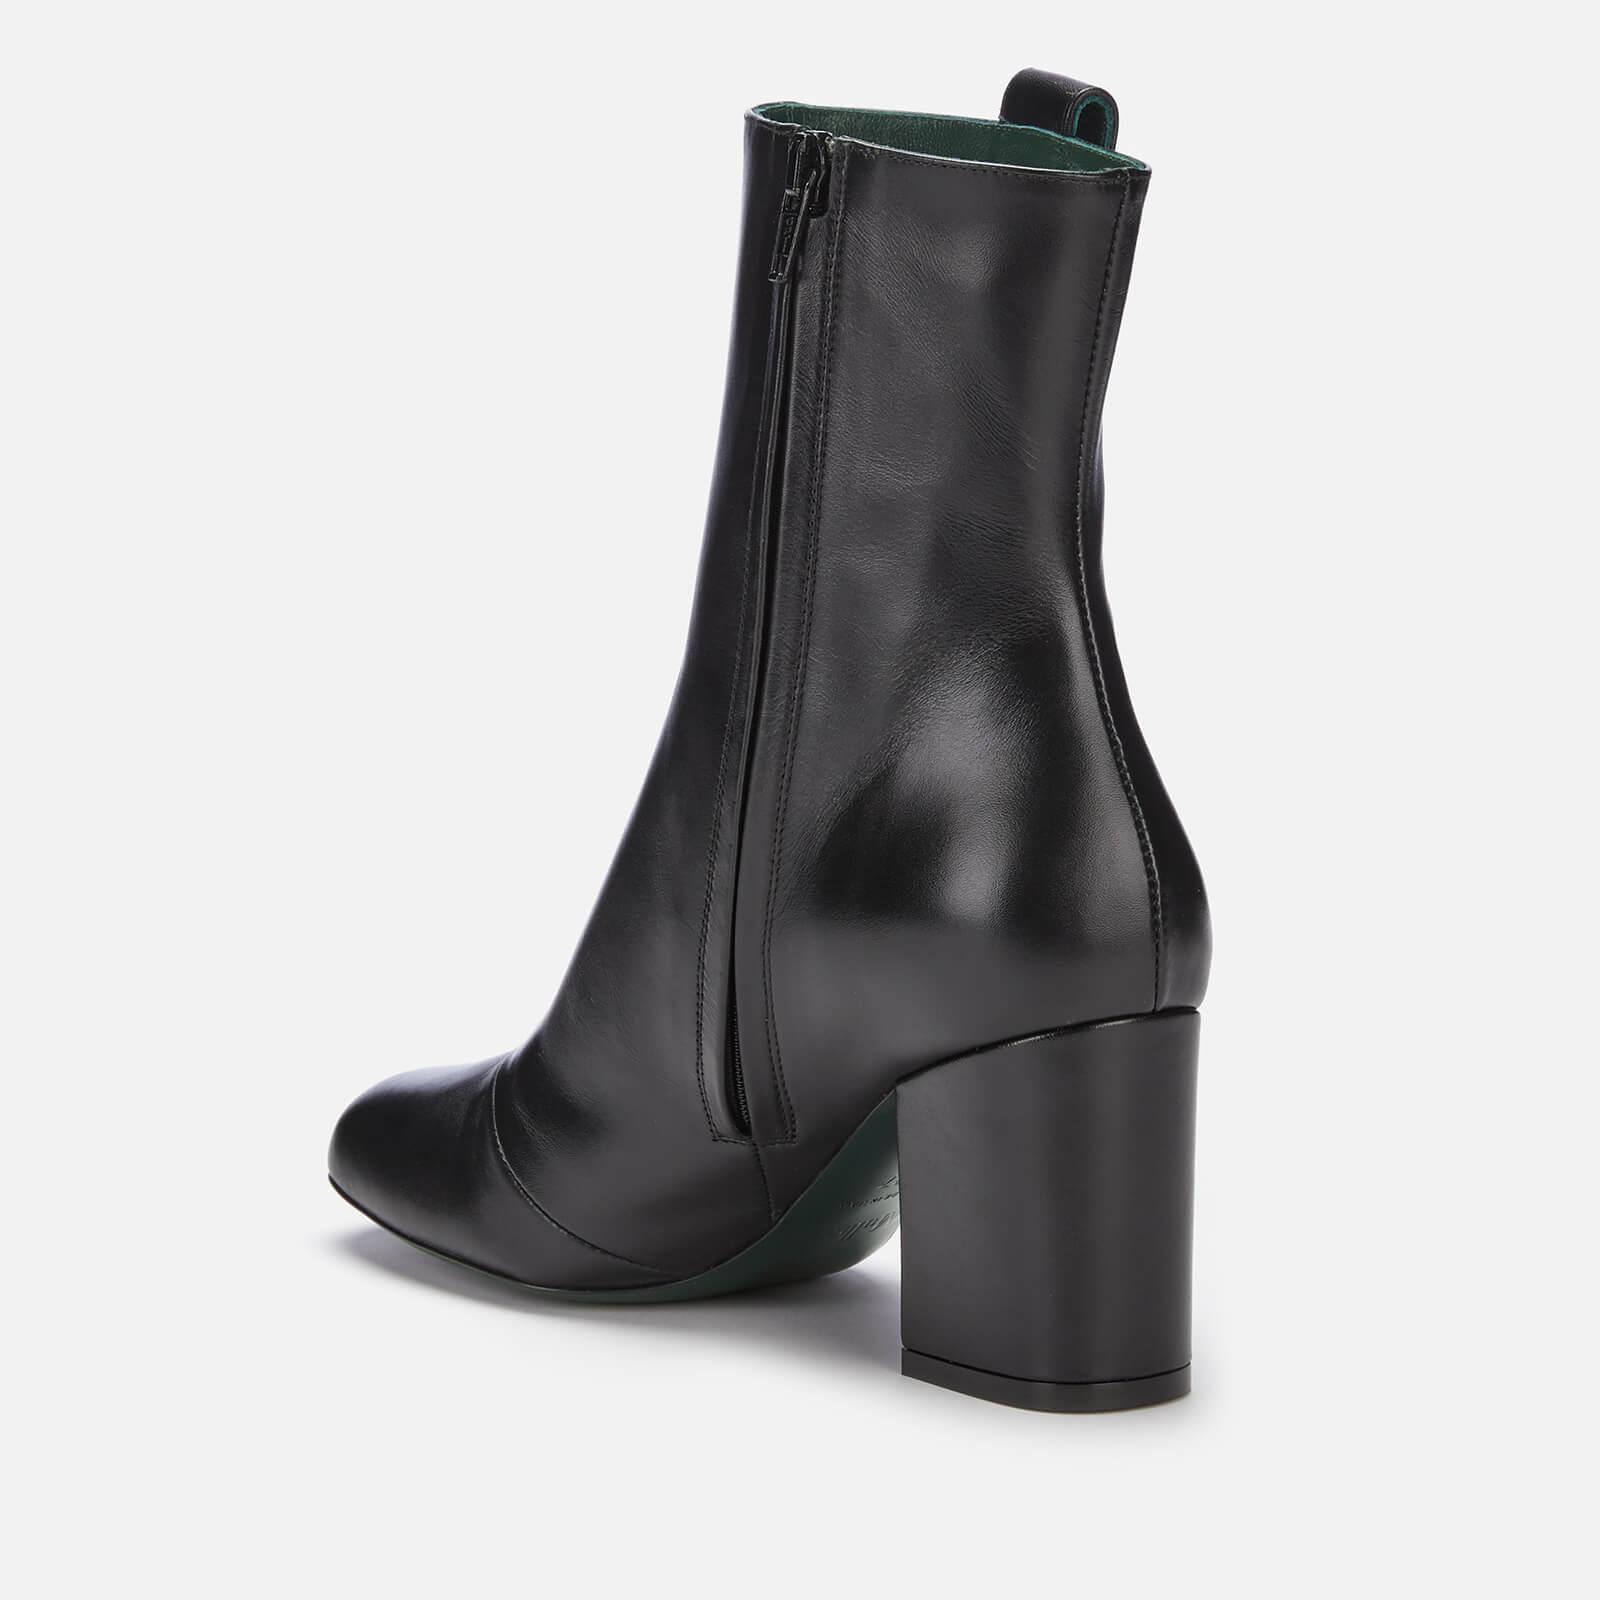 af07ce03db2 Mulberry - Black Amberley Leather Heeled Boots - Lyst. View fullscreen